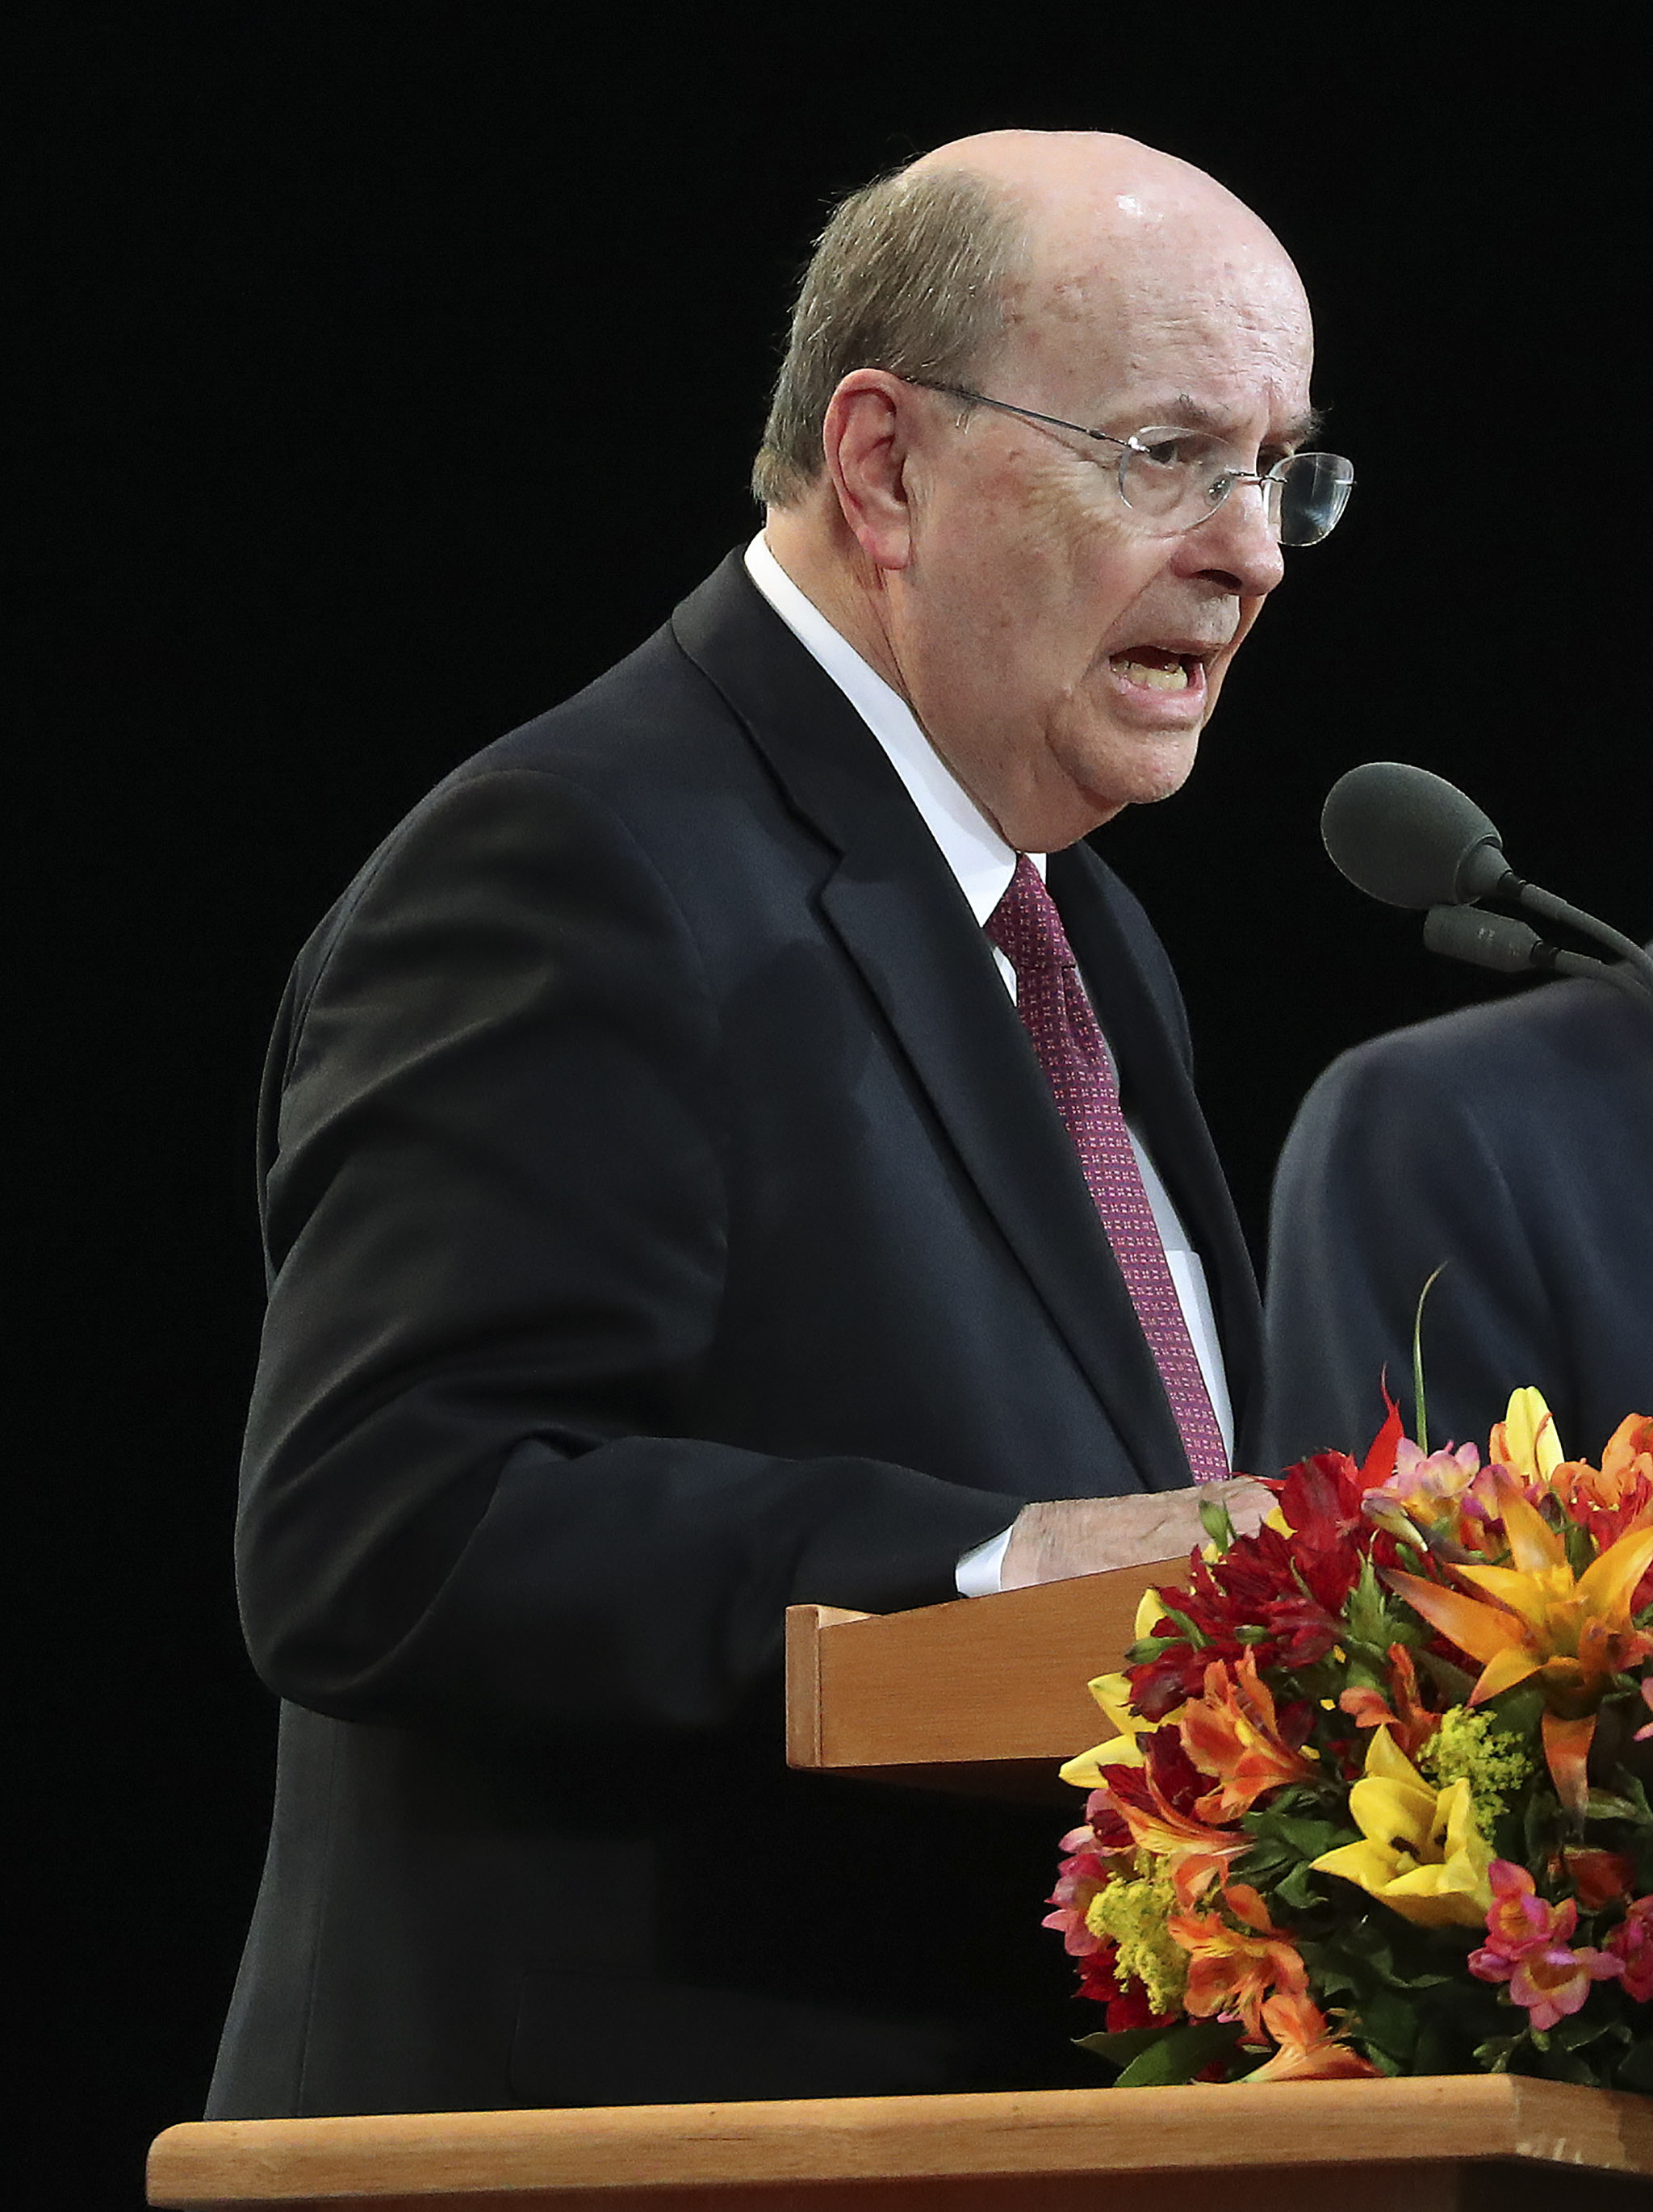 Elder Quentin L. Cook of the Quorum of the Twelve Apostles of The Church of Jesus Christ of Latter-day Saints speaks during a devotional in Sao Paulo, Brazil, on Sunday, Sept. 1, 2019.